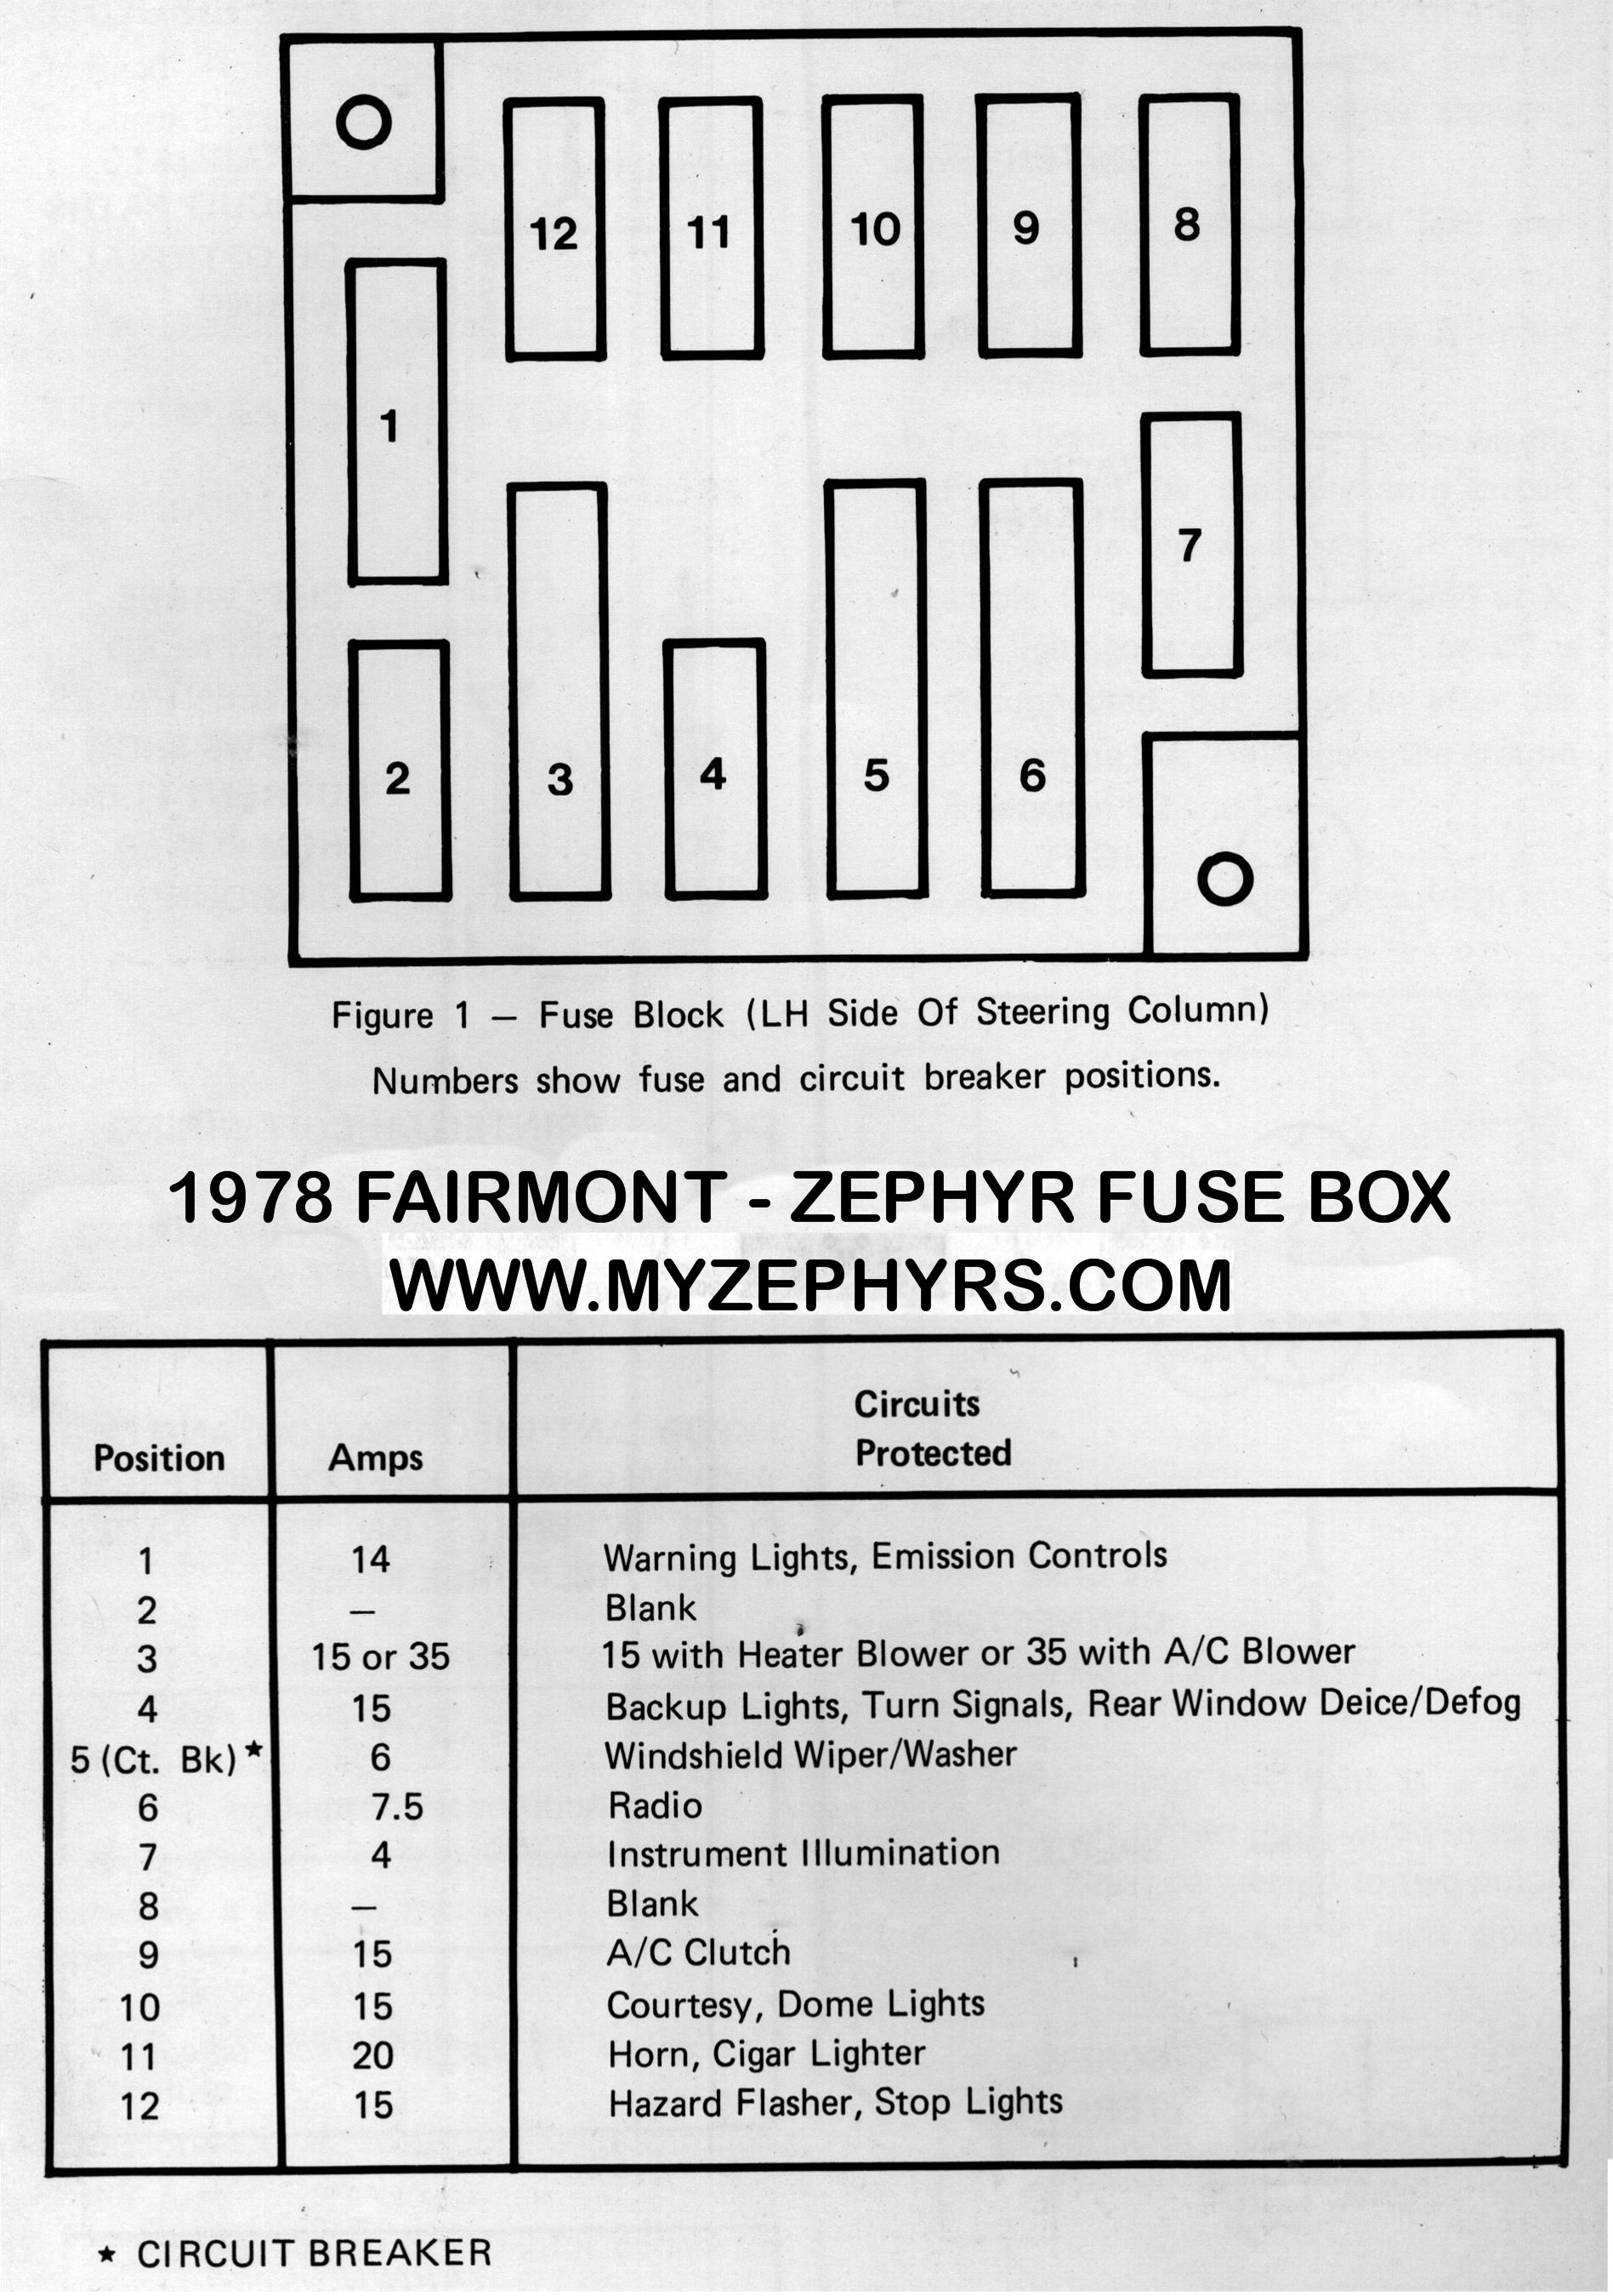 2006 lincoln zephyr wiring diagram | wiring library 06 tundra fuse diagram 06 zephyr fuse diagram